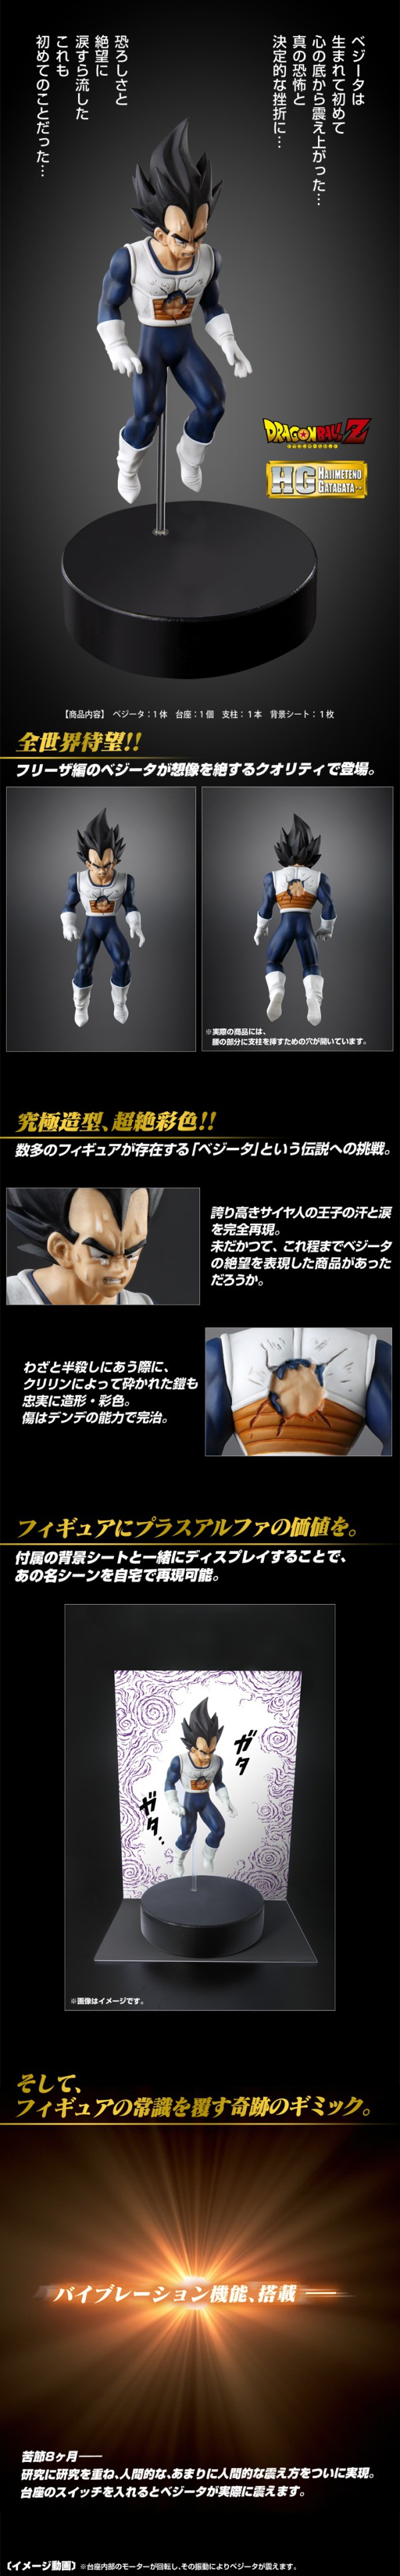 Dragonball Z Prince Vegeta Sheds a Manly Tear in New Figure